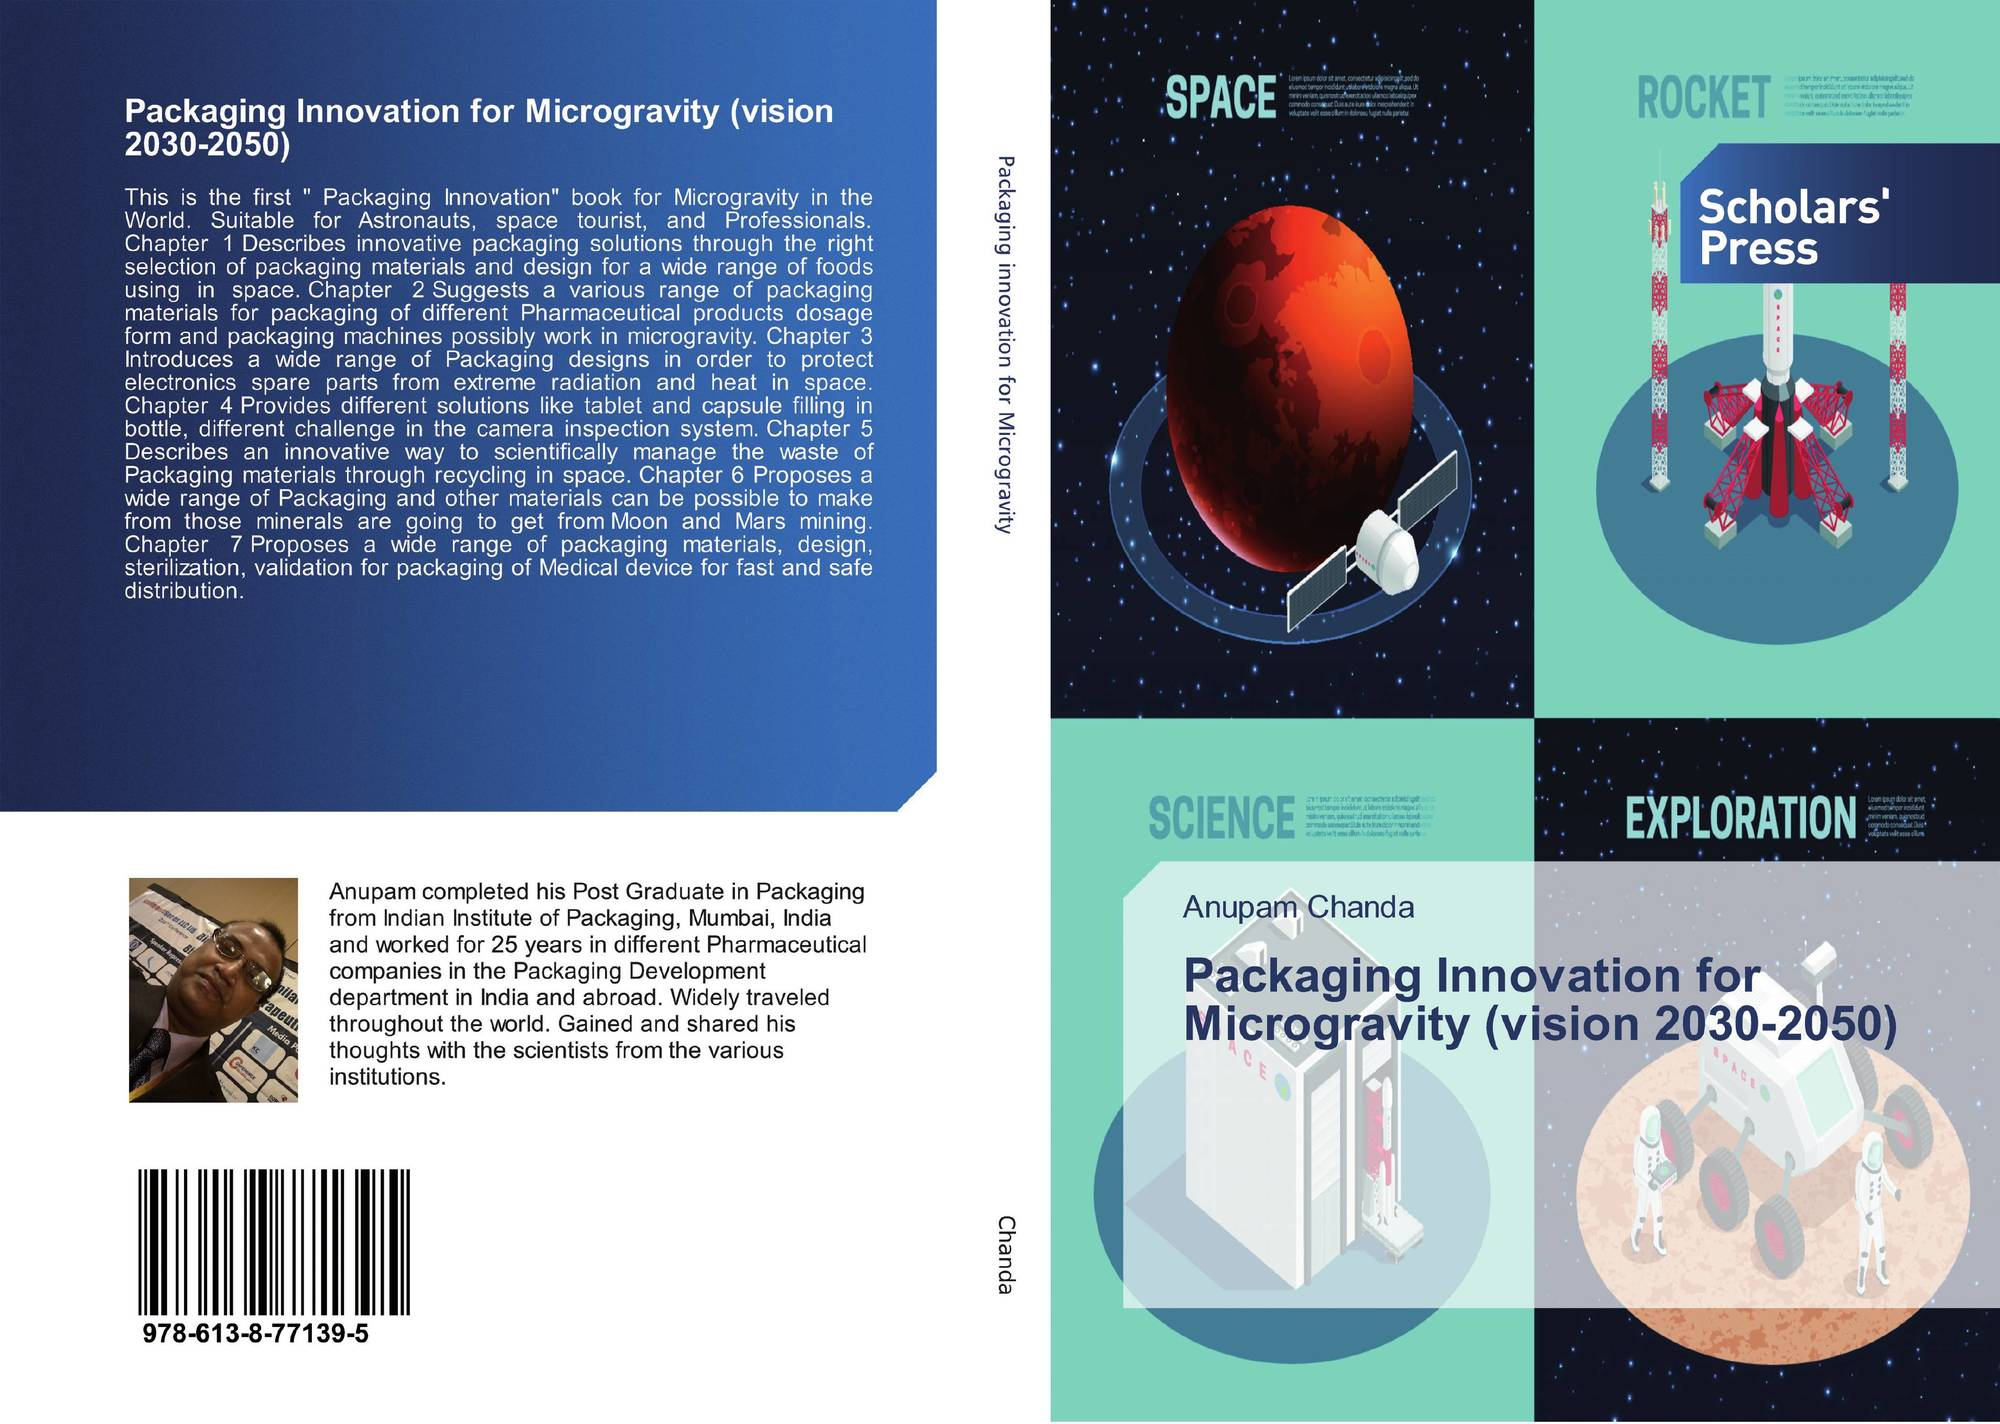 Packaging Innovation for Microgravity (vision 2030-2050), 978-613-8